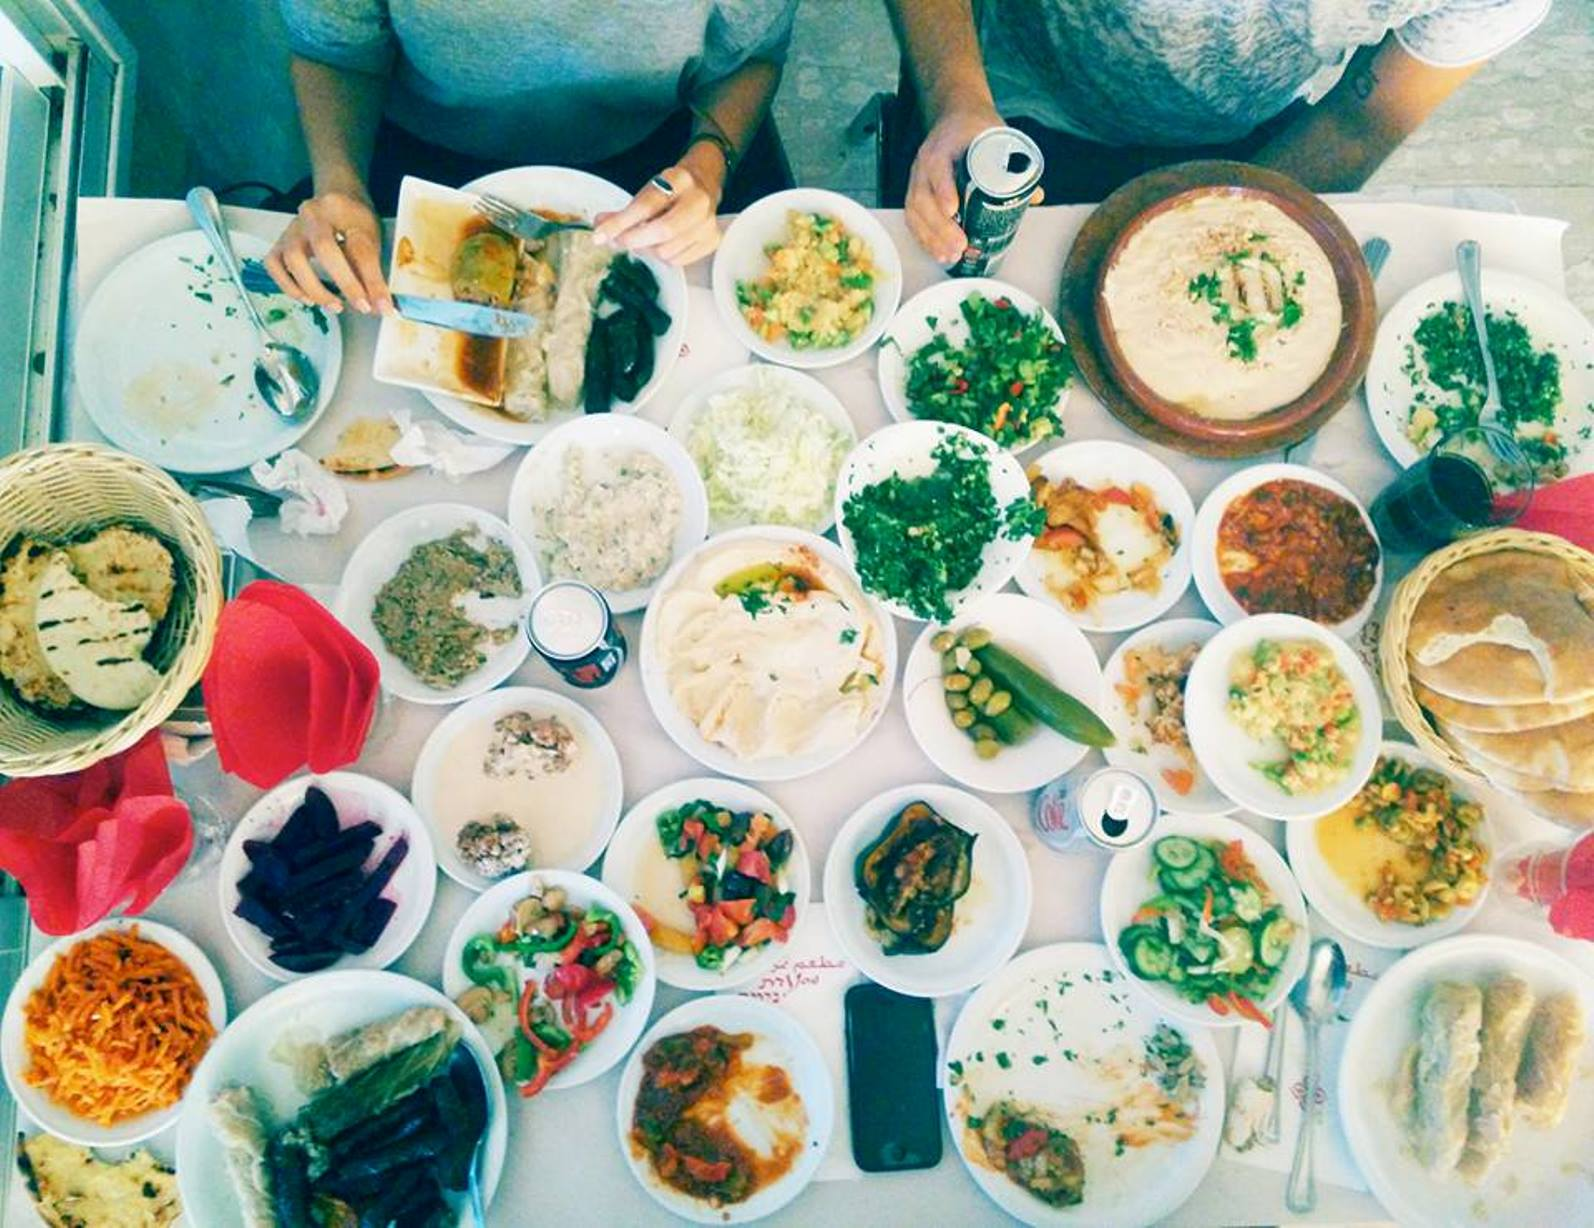 Diners at Nimer get a huge assortment of salads. Photo by Odin Shadmi